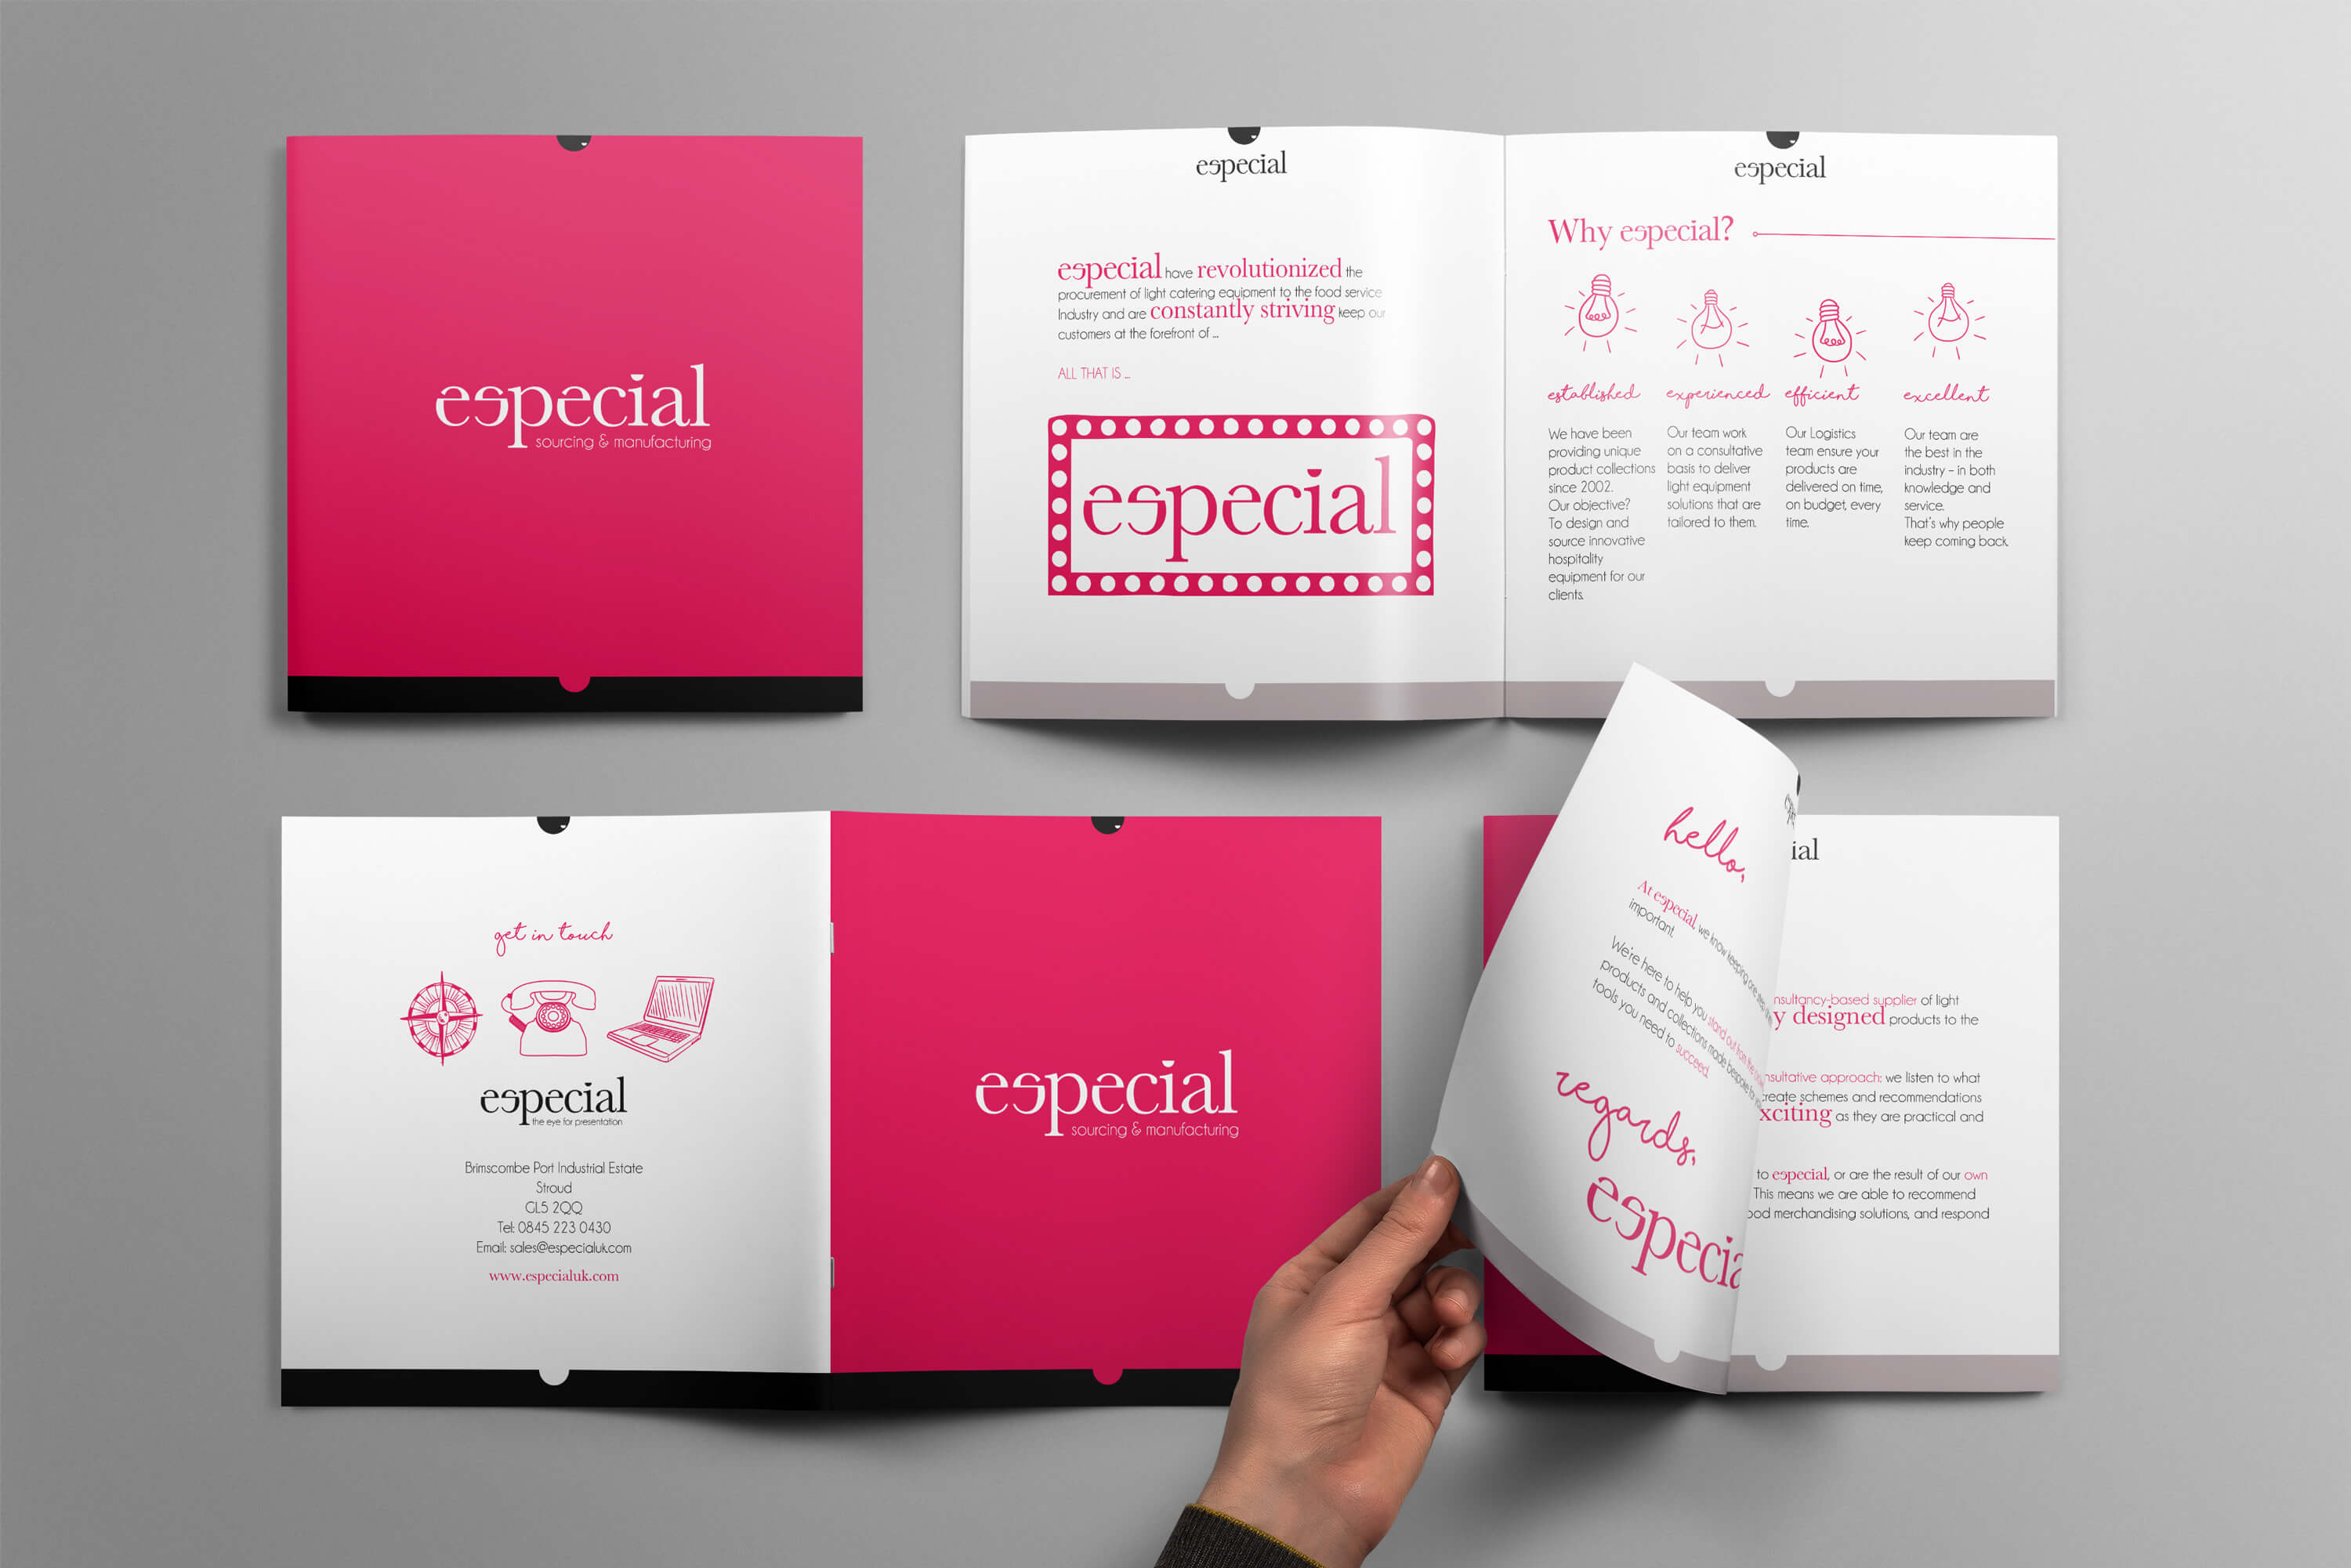 Especial Sourcing and Manufacturing brochure design displayed in different ways on table top